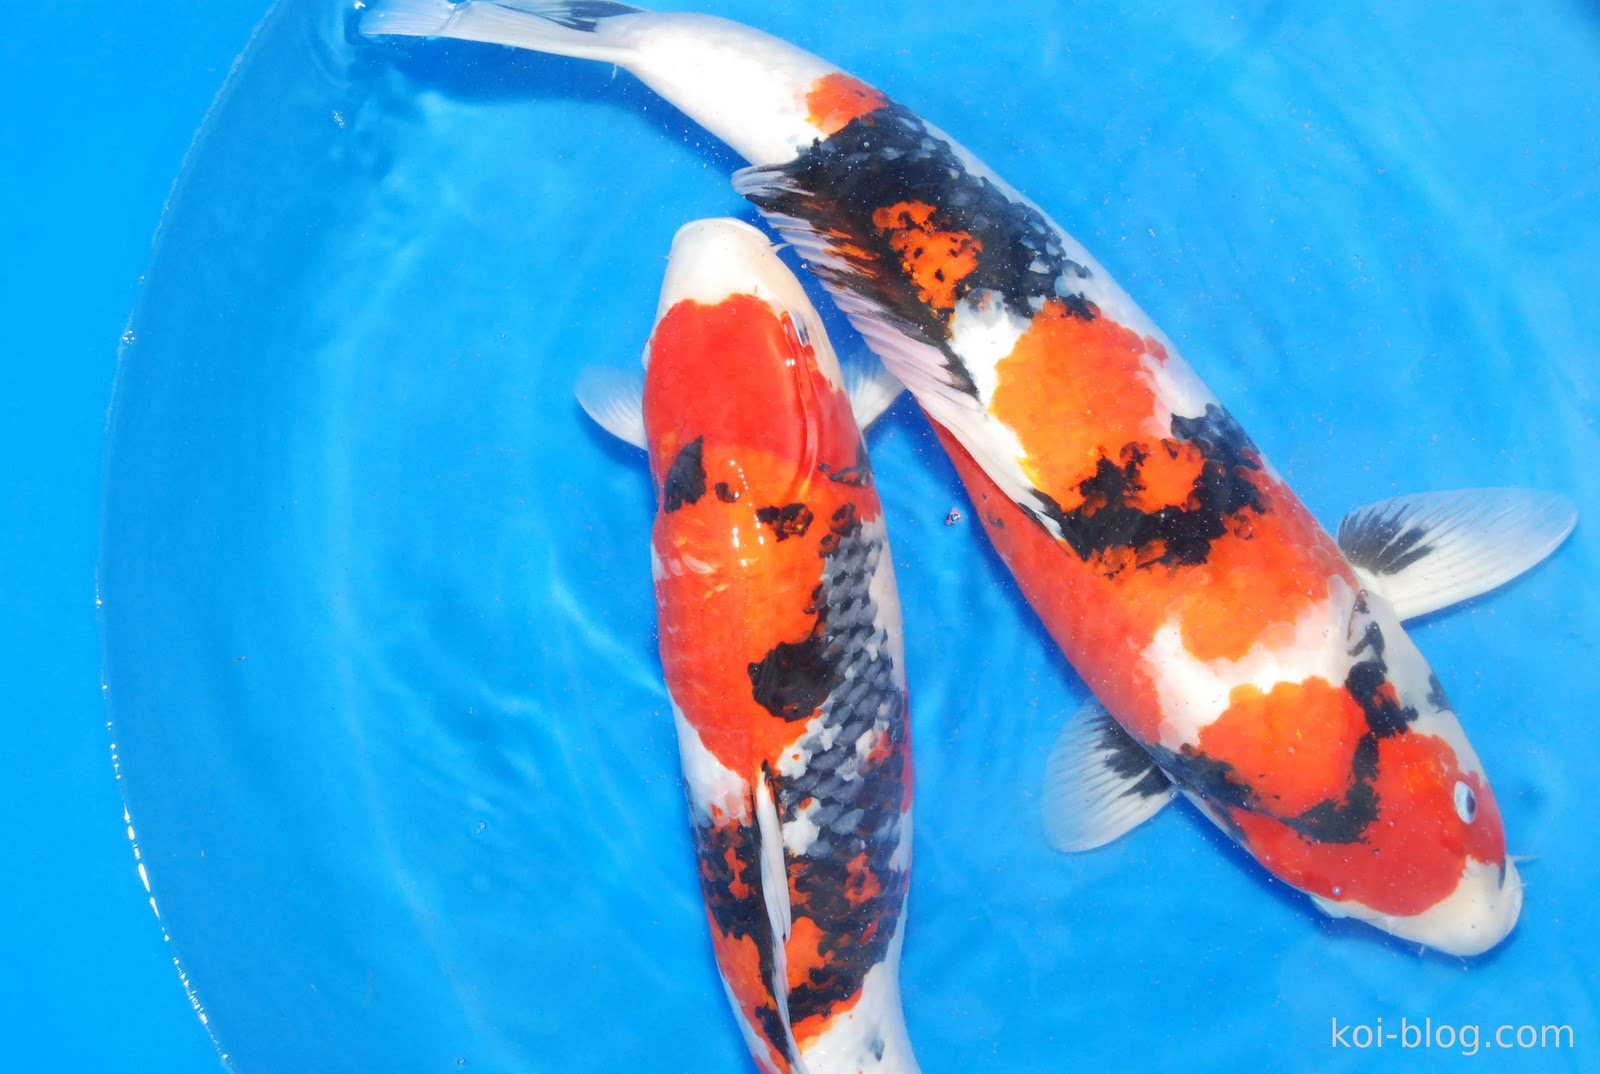 Koi blog koi for Wild koi fish